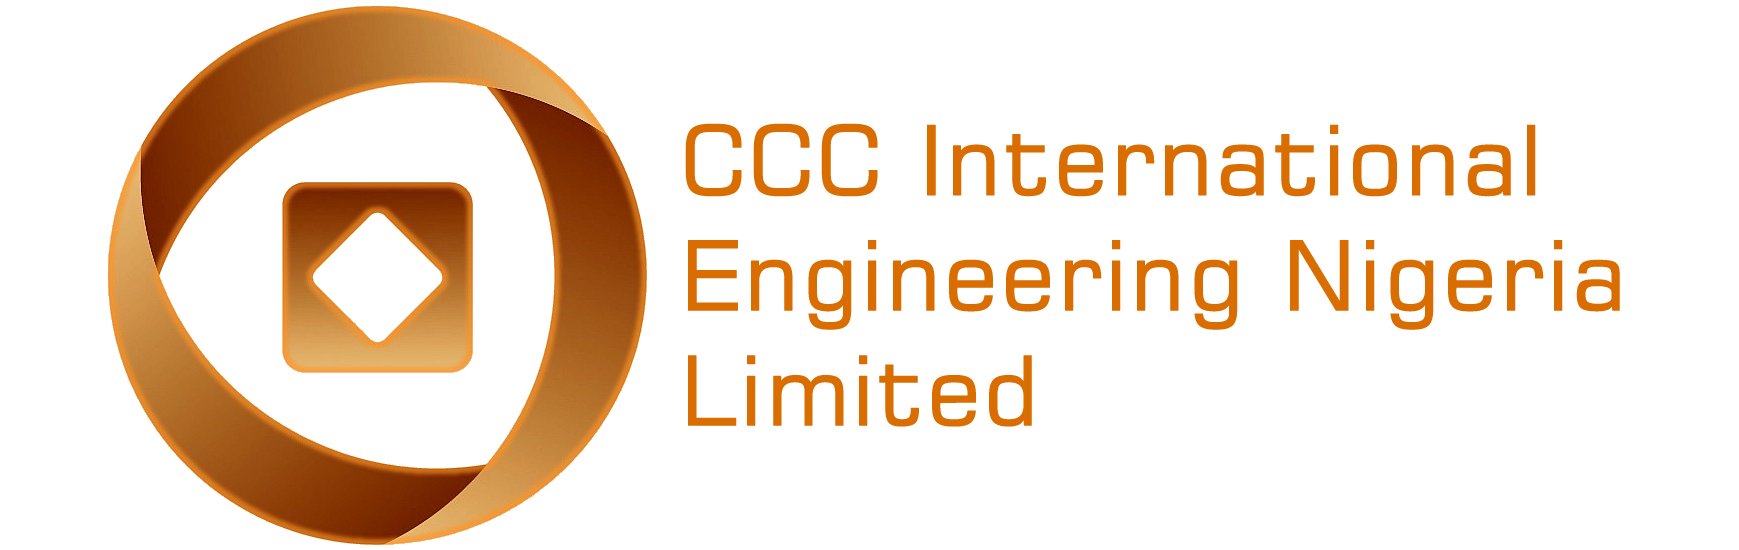 CCC International Engineering Nigeria Limited